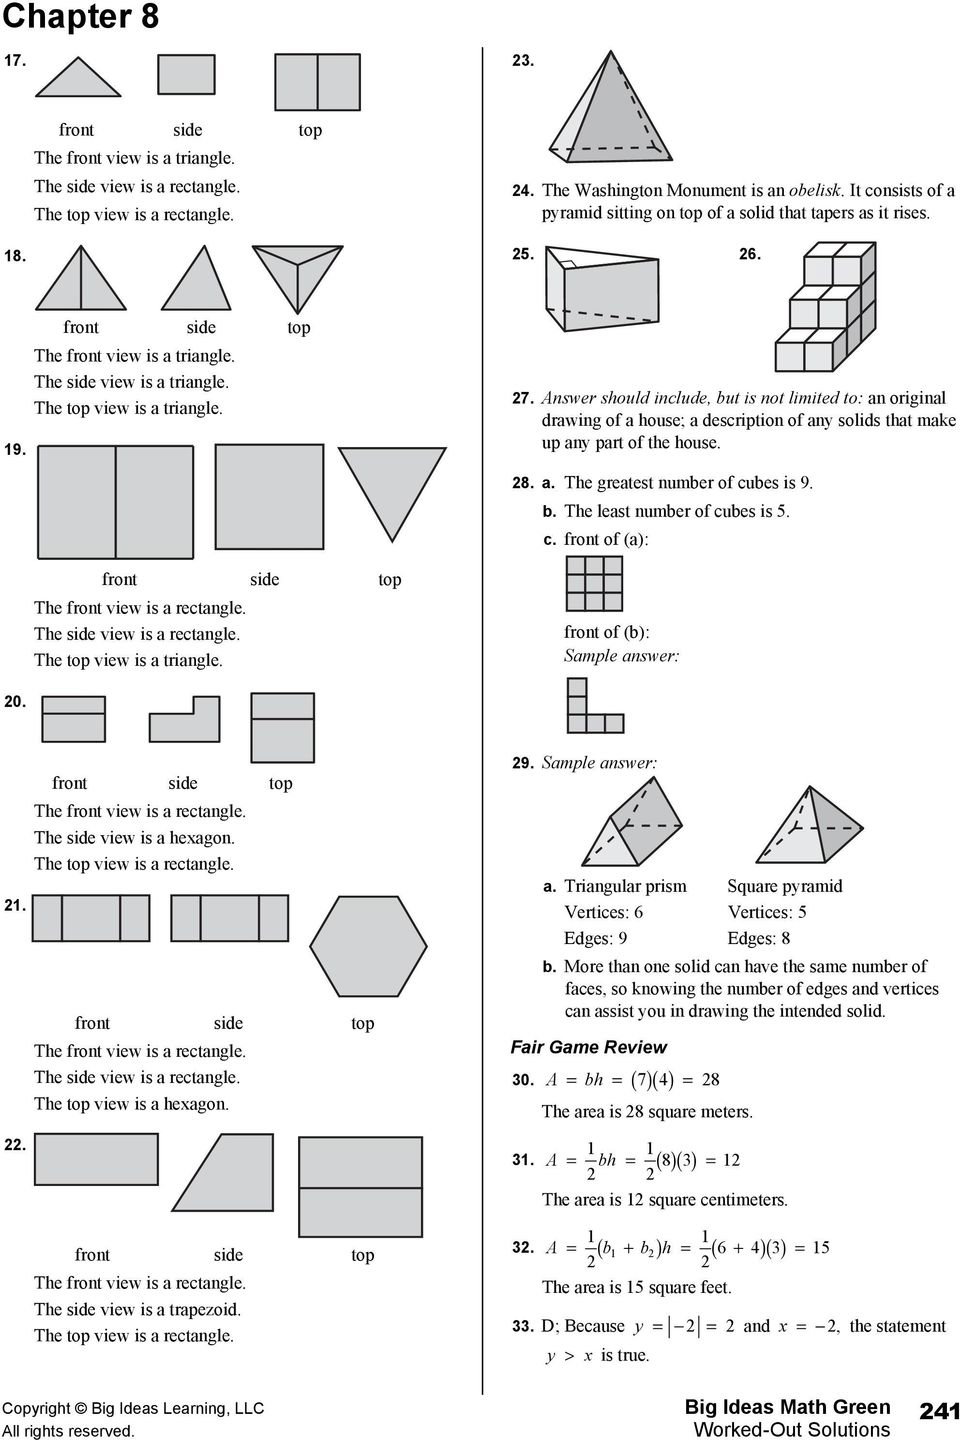 Answer should include, but is not limited to: an original drawing house; a description ny solids that make up any part the house. 8. a. The greatest number cubes is 9. b. The least number cubes is 5.